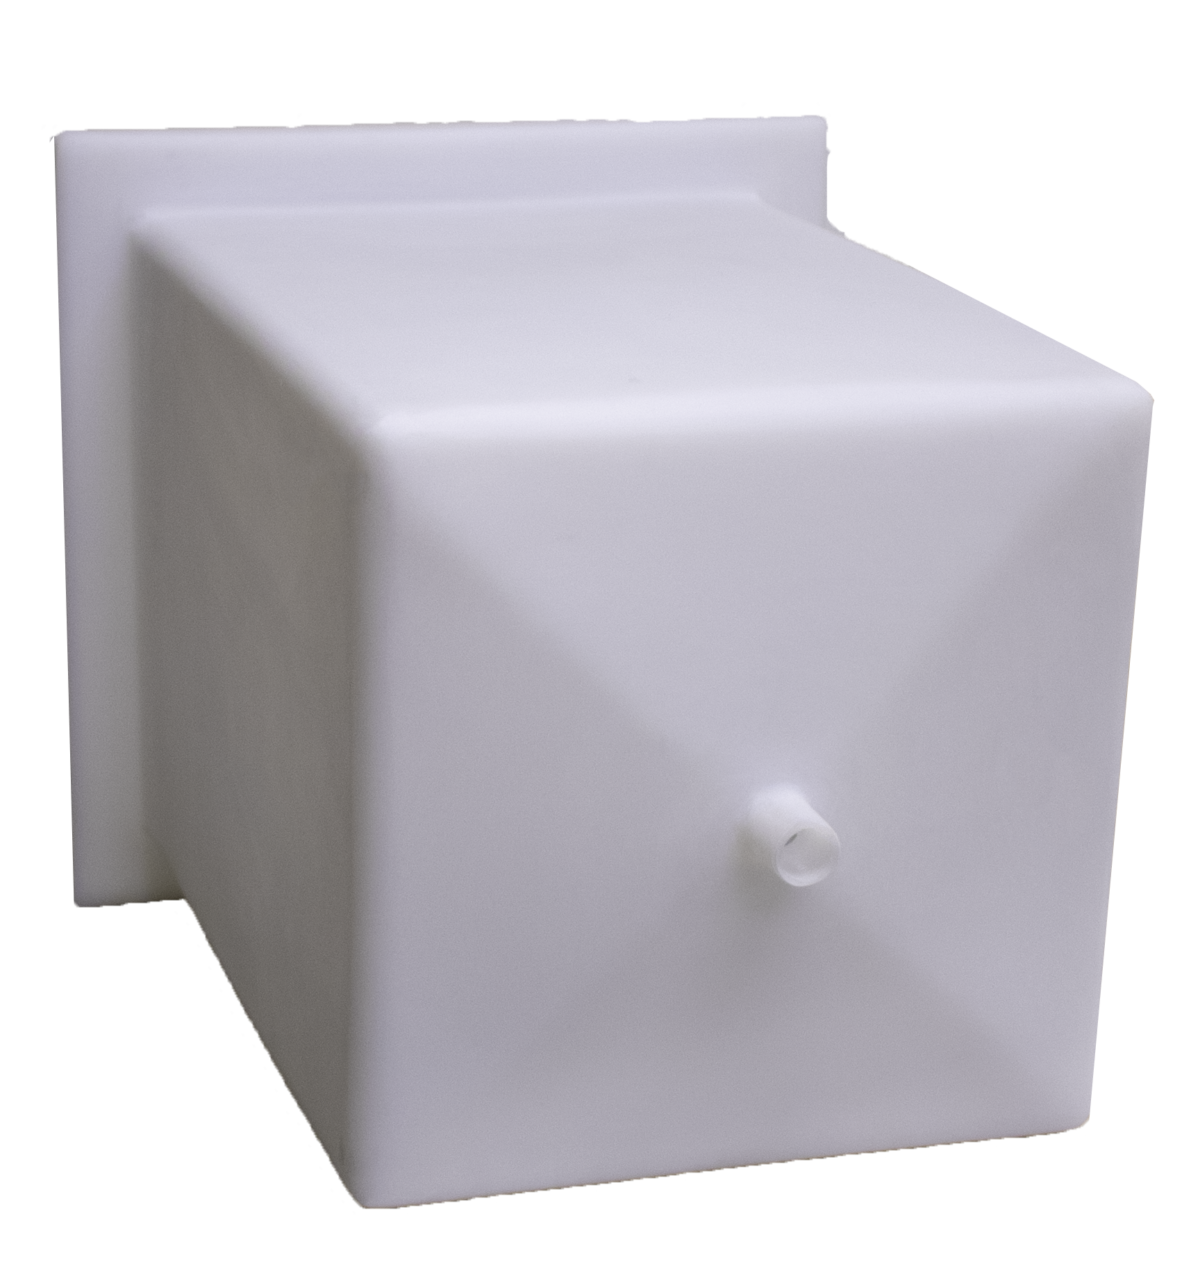 A standard molded high purity tank